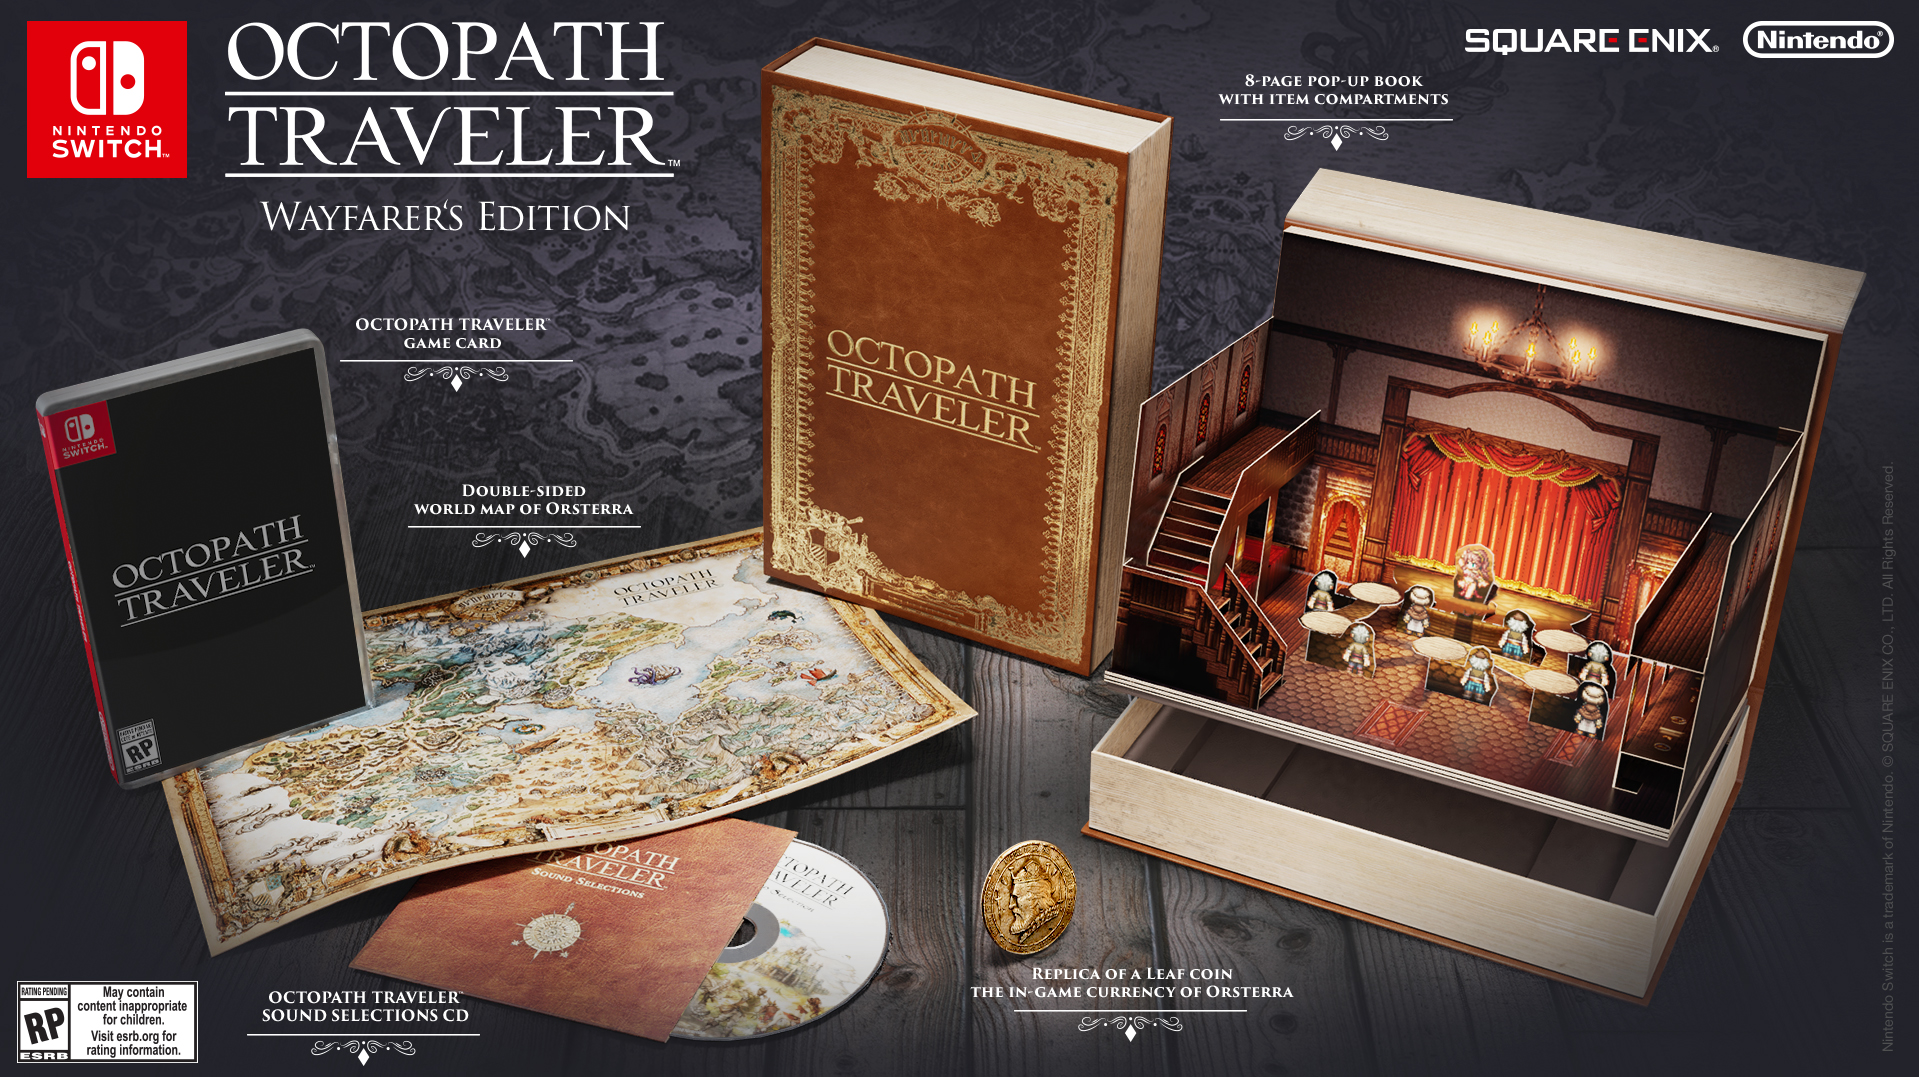 Octopath Traveler Wayfarer's Edition